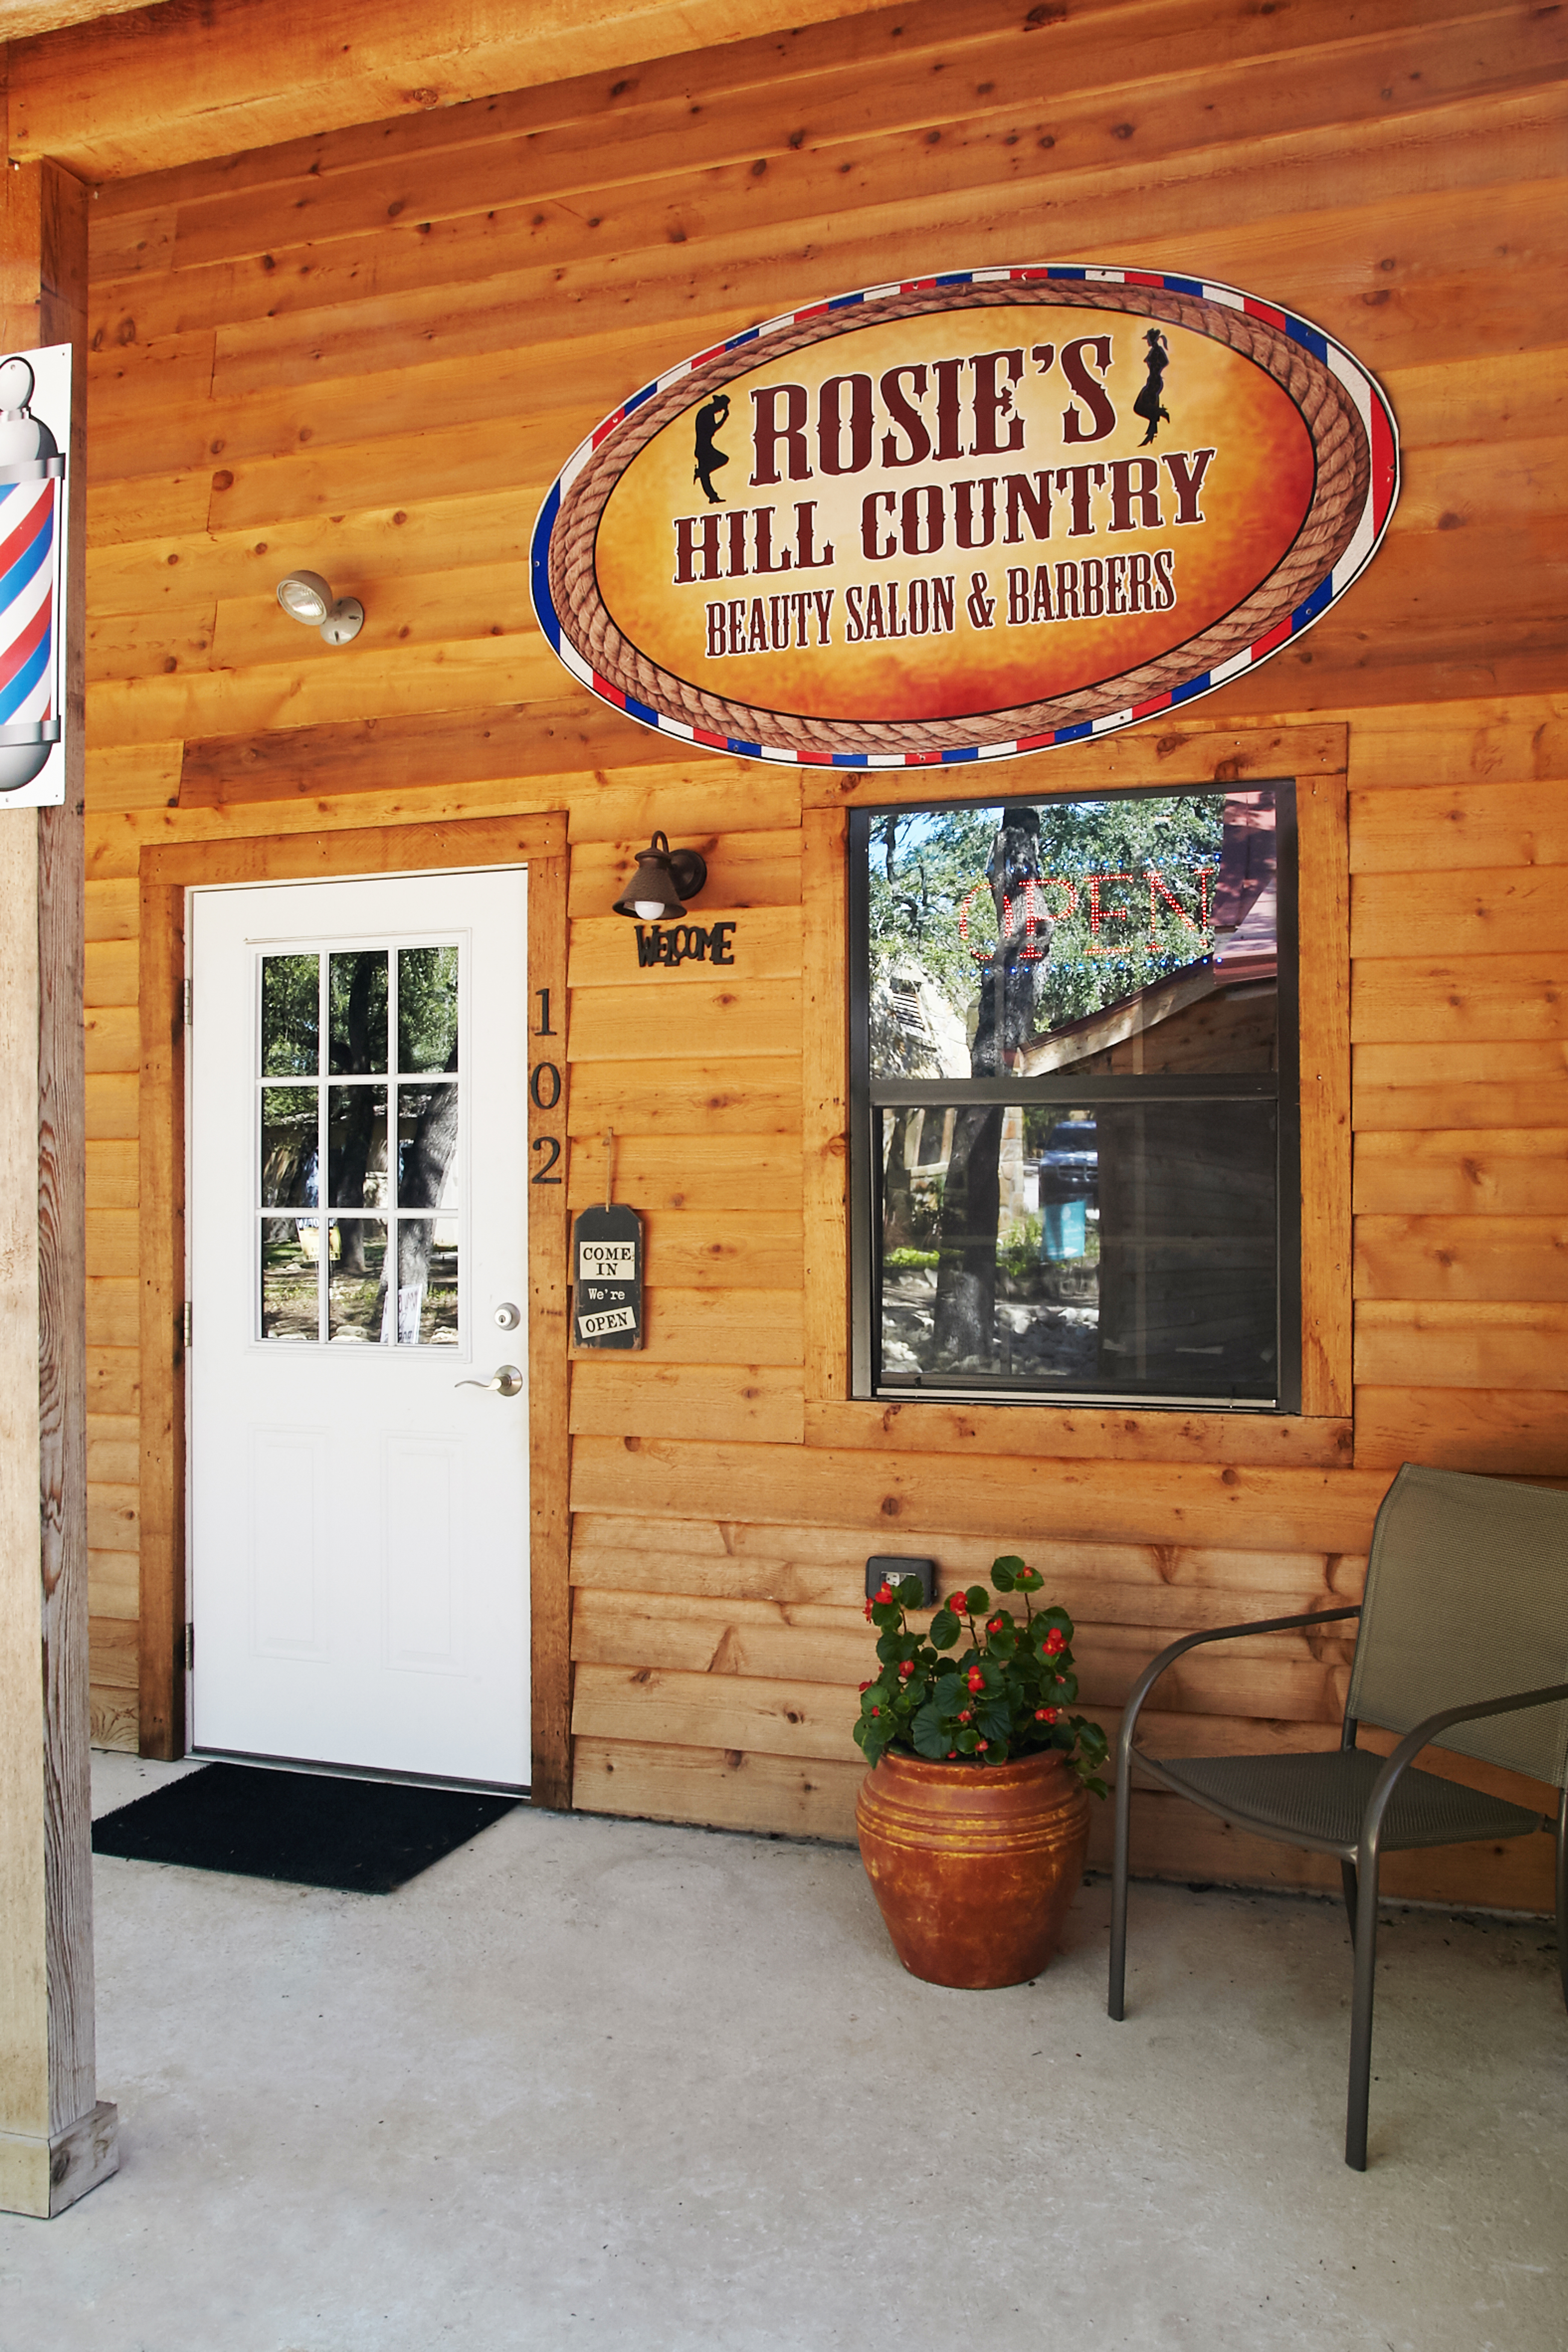 Rosies Hill Country Beauty Salon  Barber